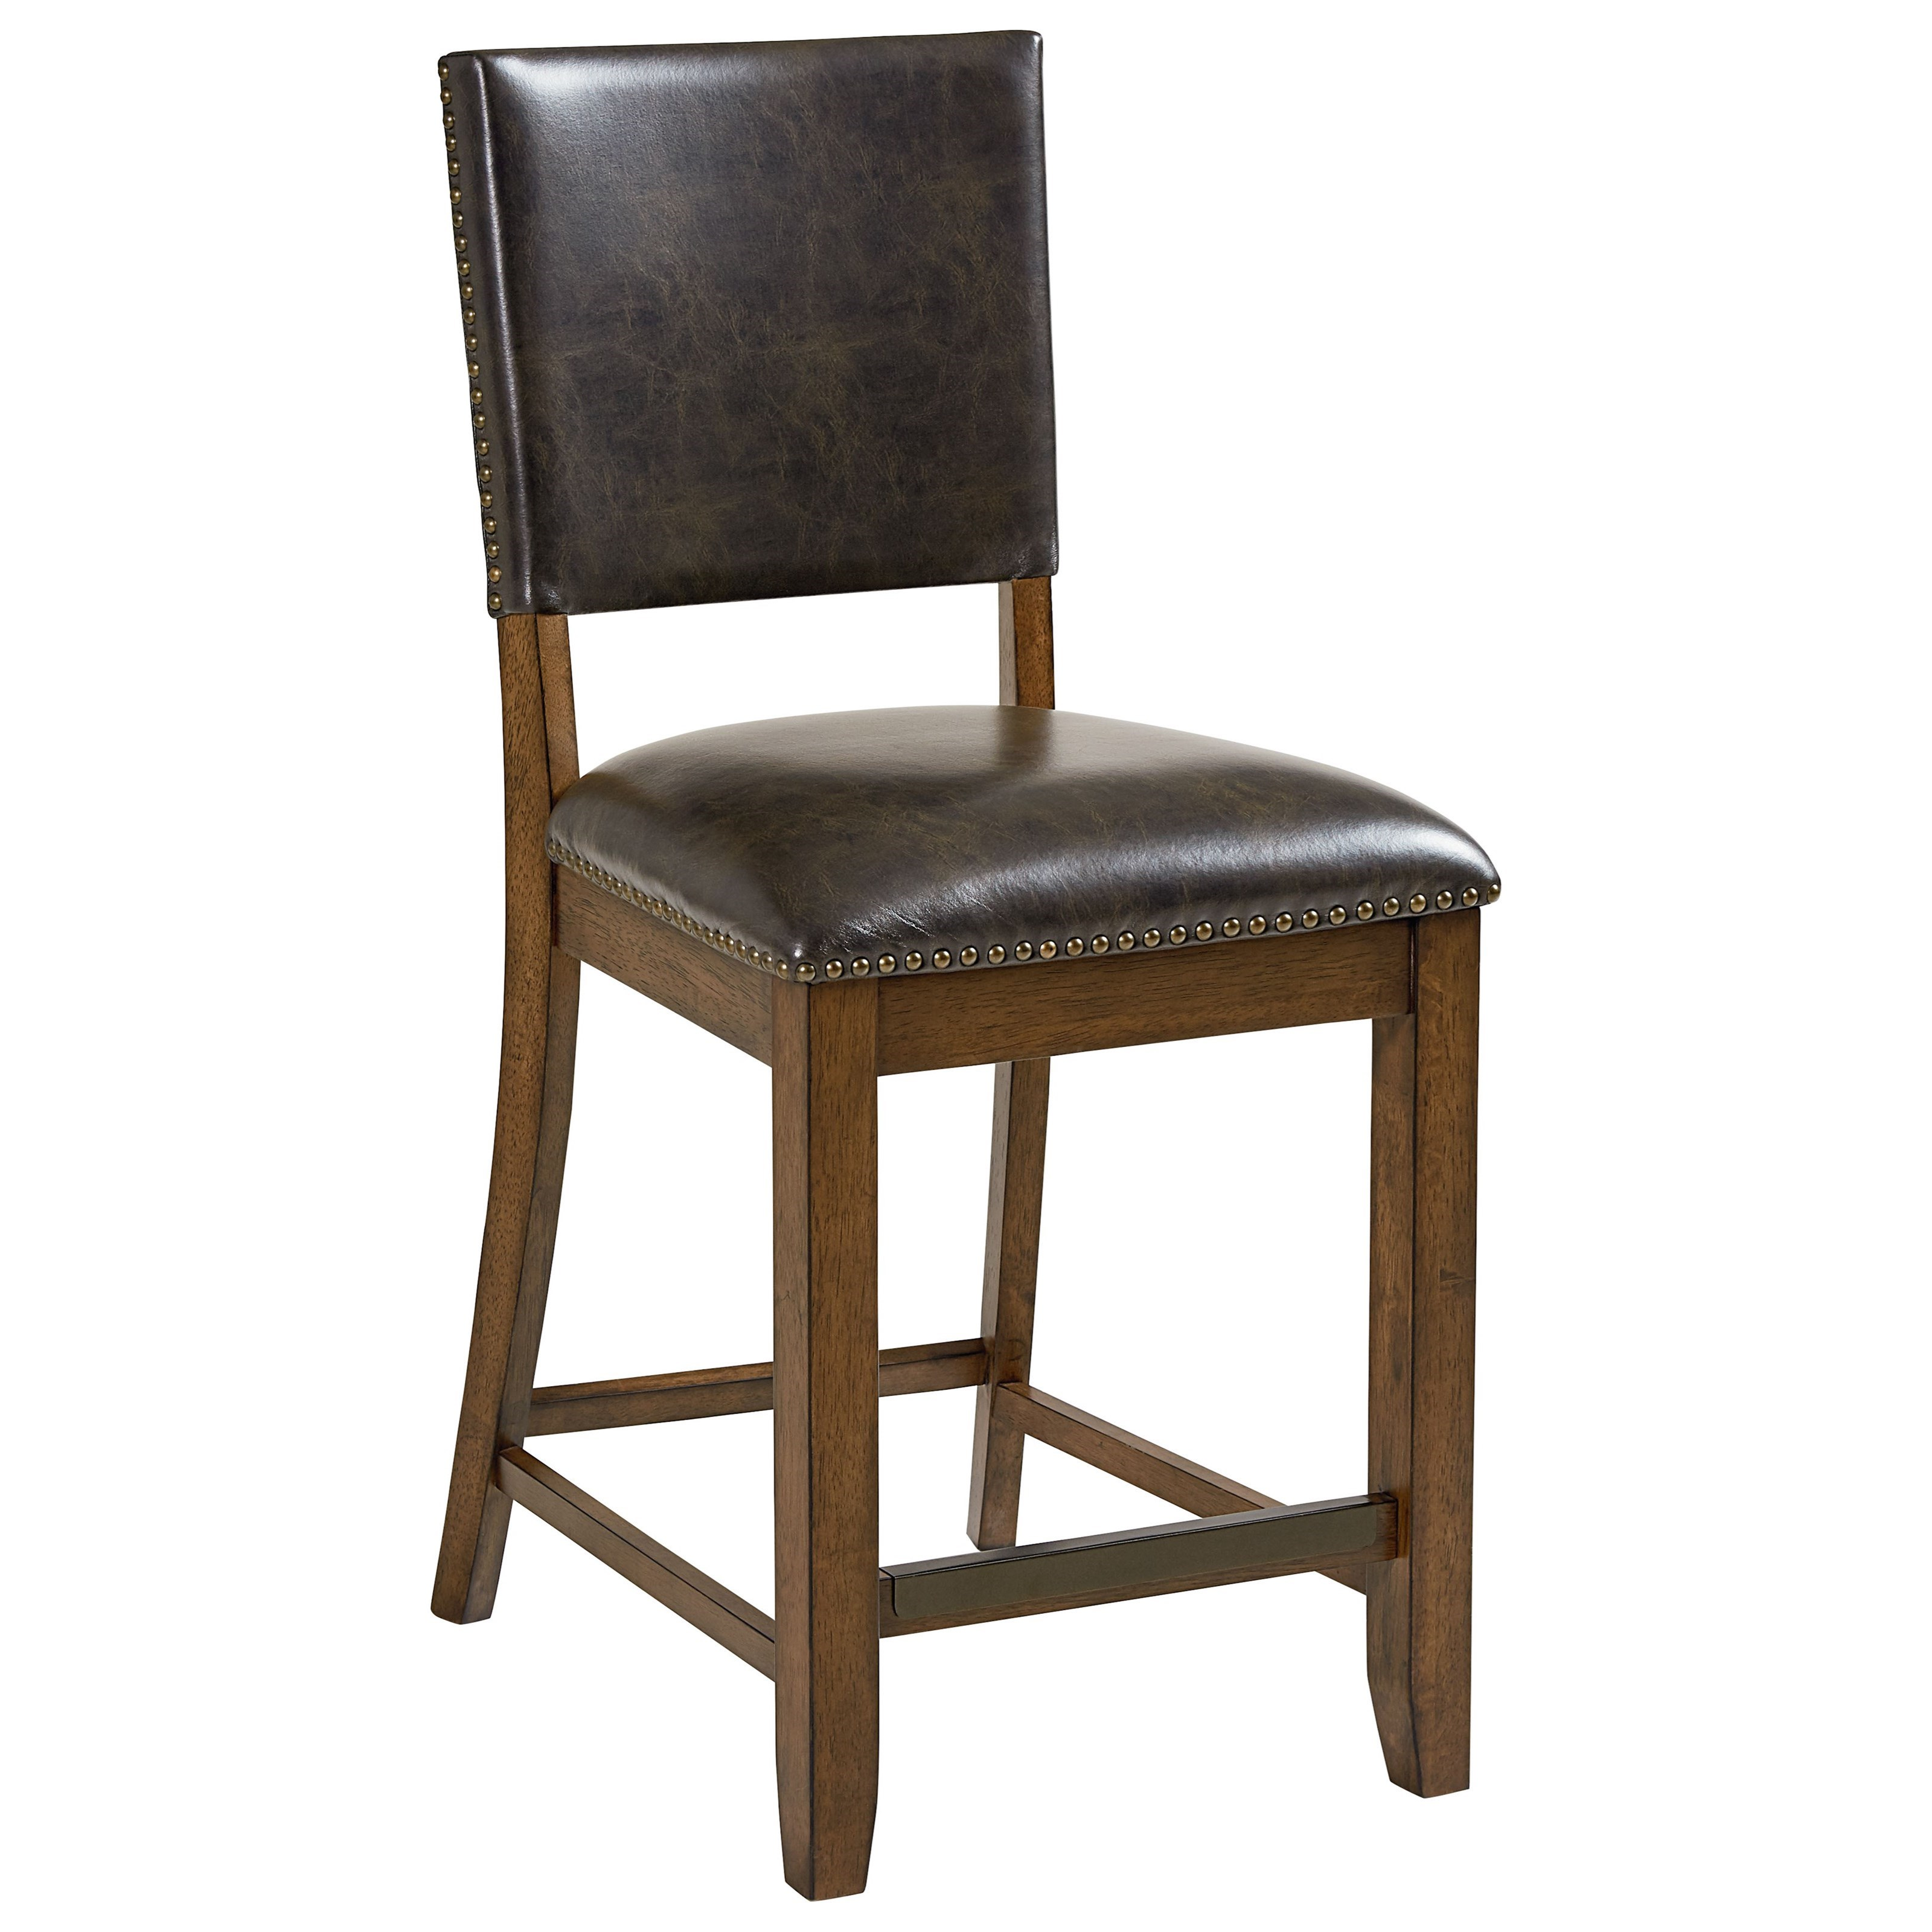 Standard Furniture Benson Counter Height Rustic Table And Chair Set Dunk amp Bright